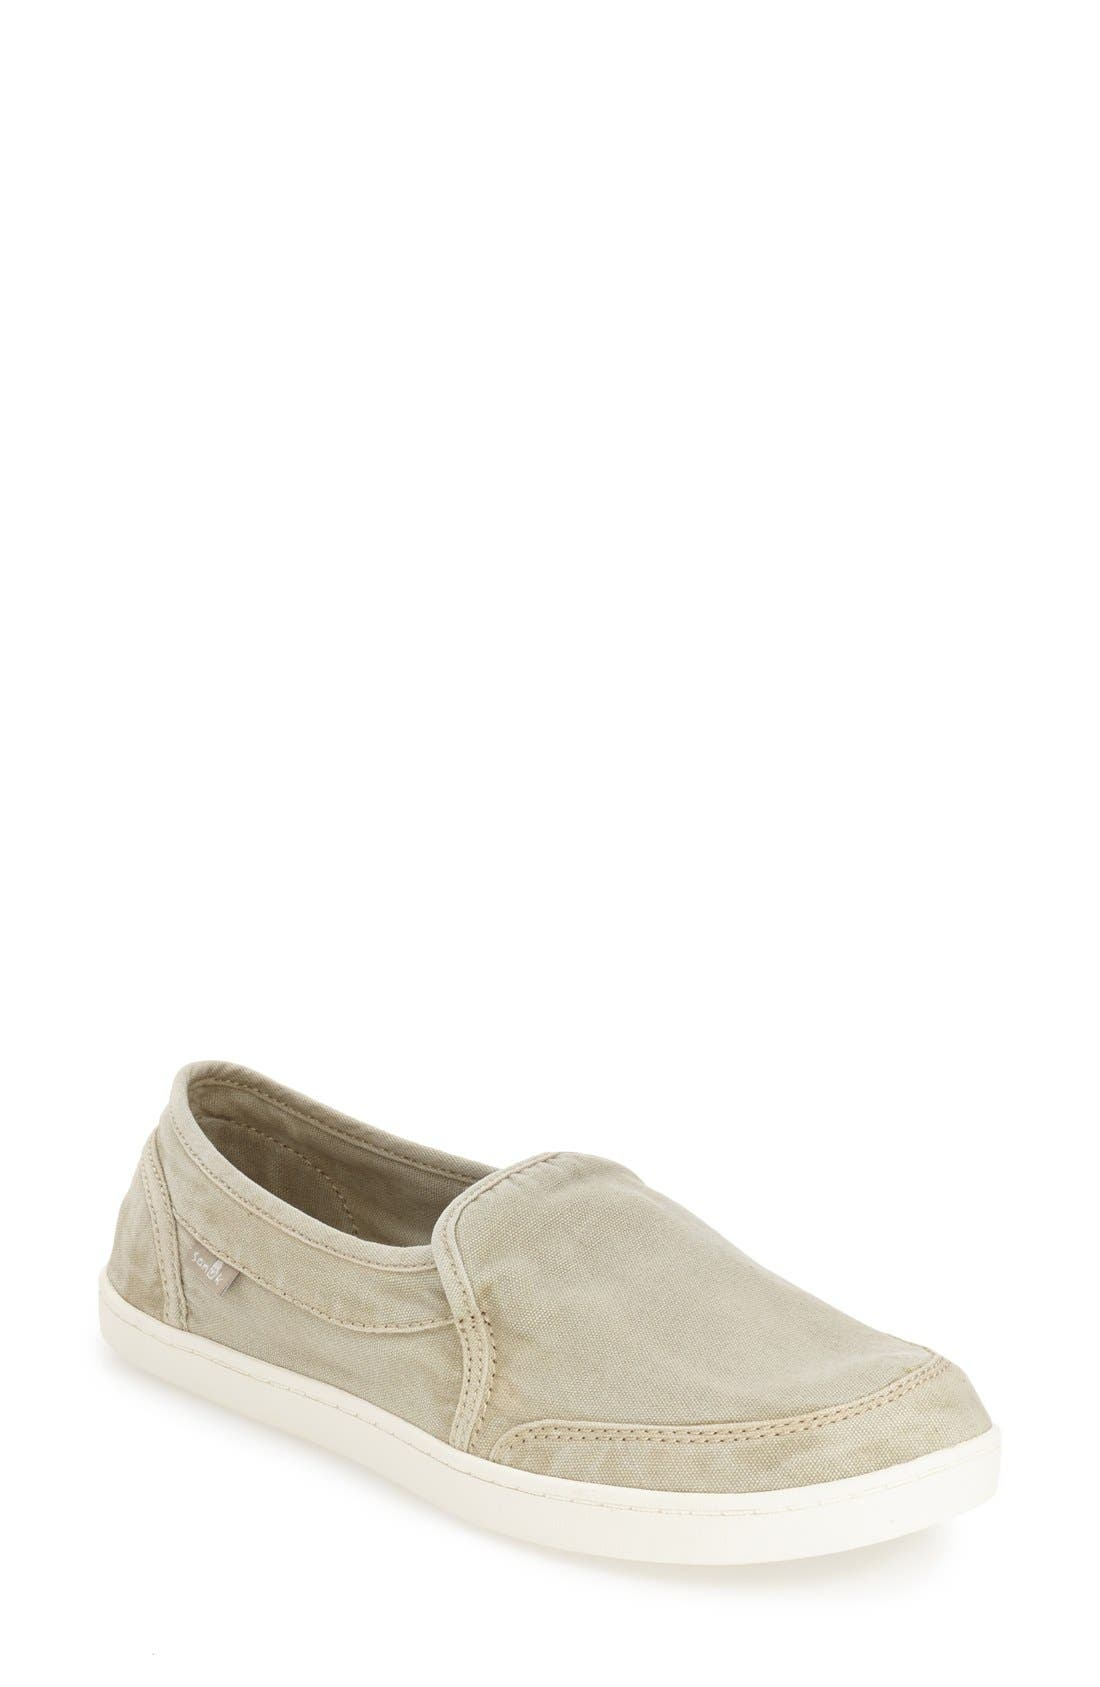 'Pair O Dice' Slip On,                         Main,                         color, Natural